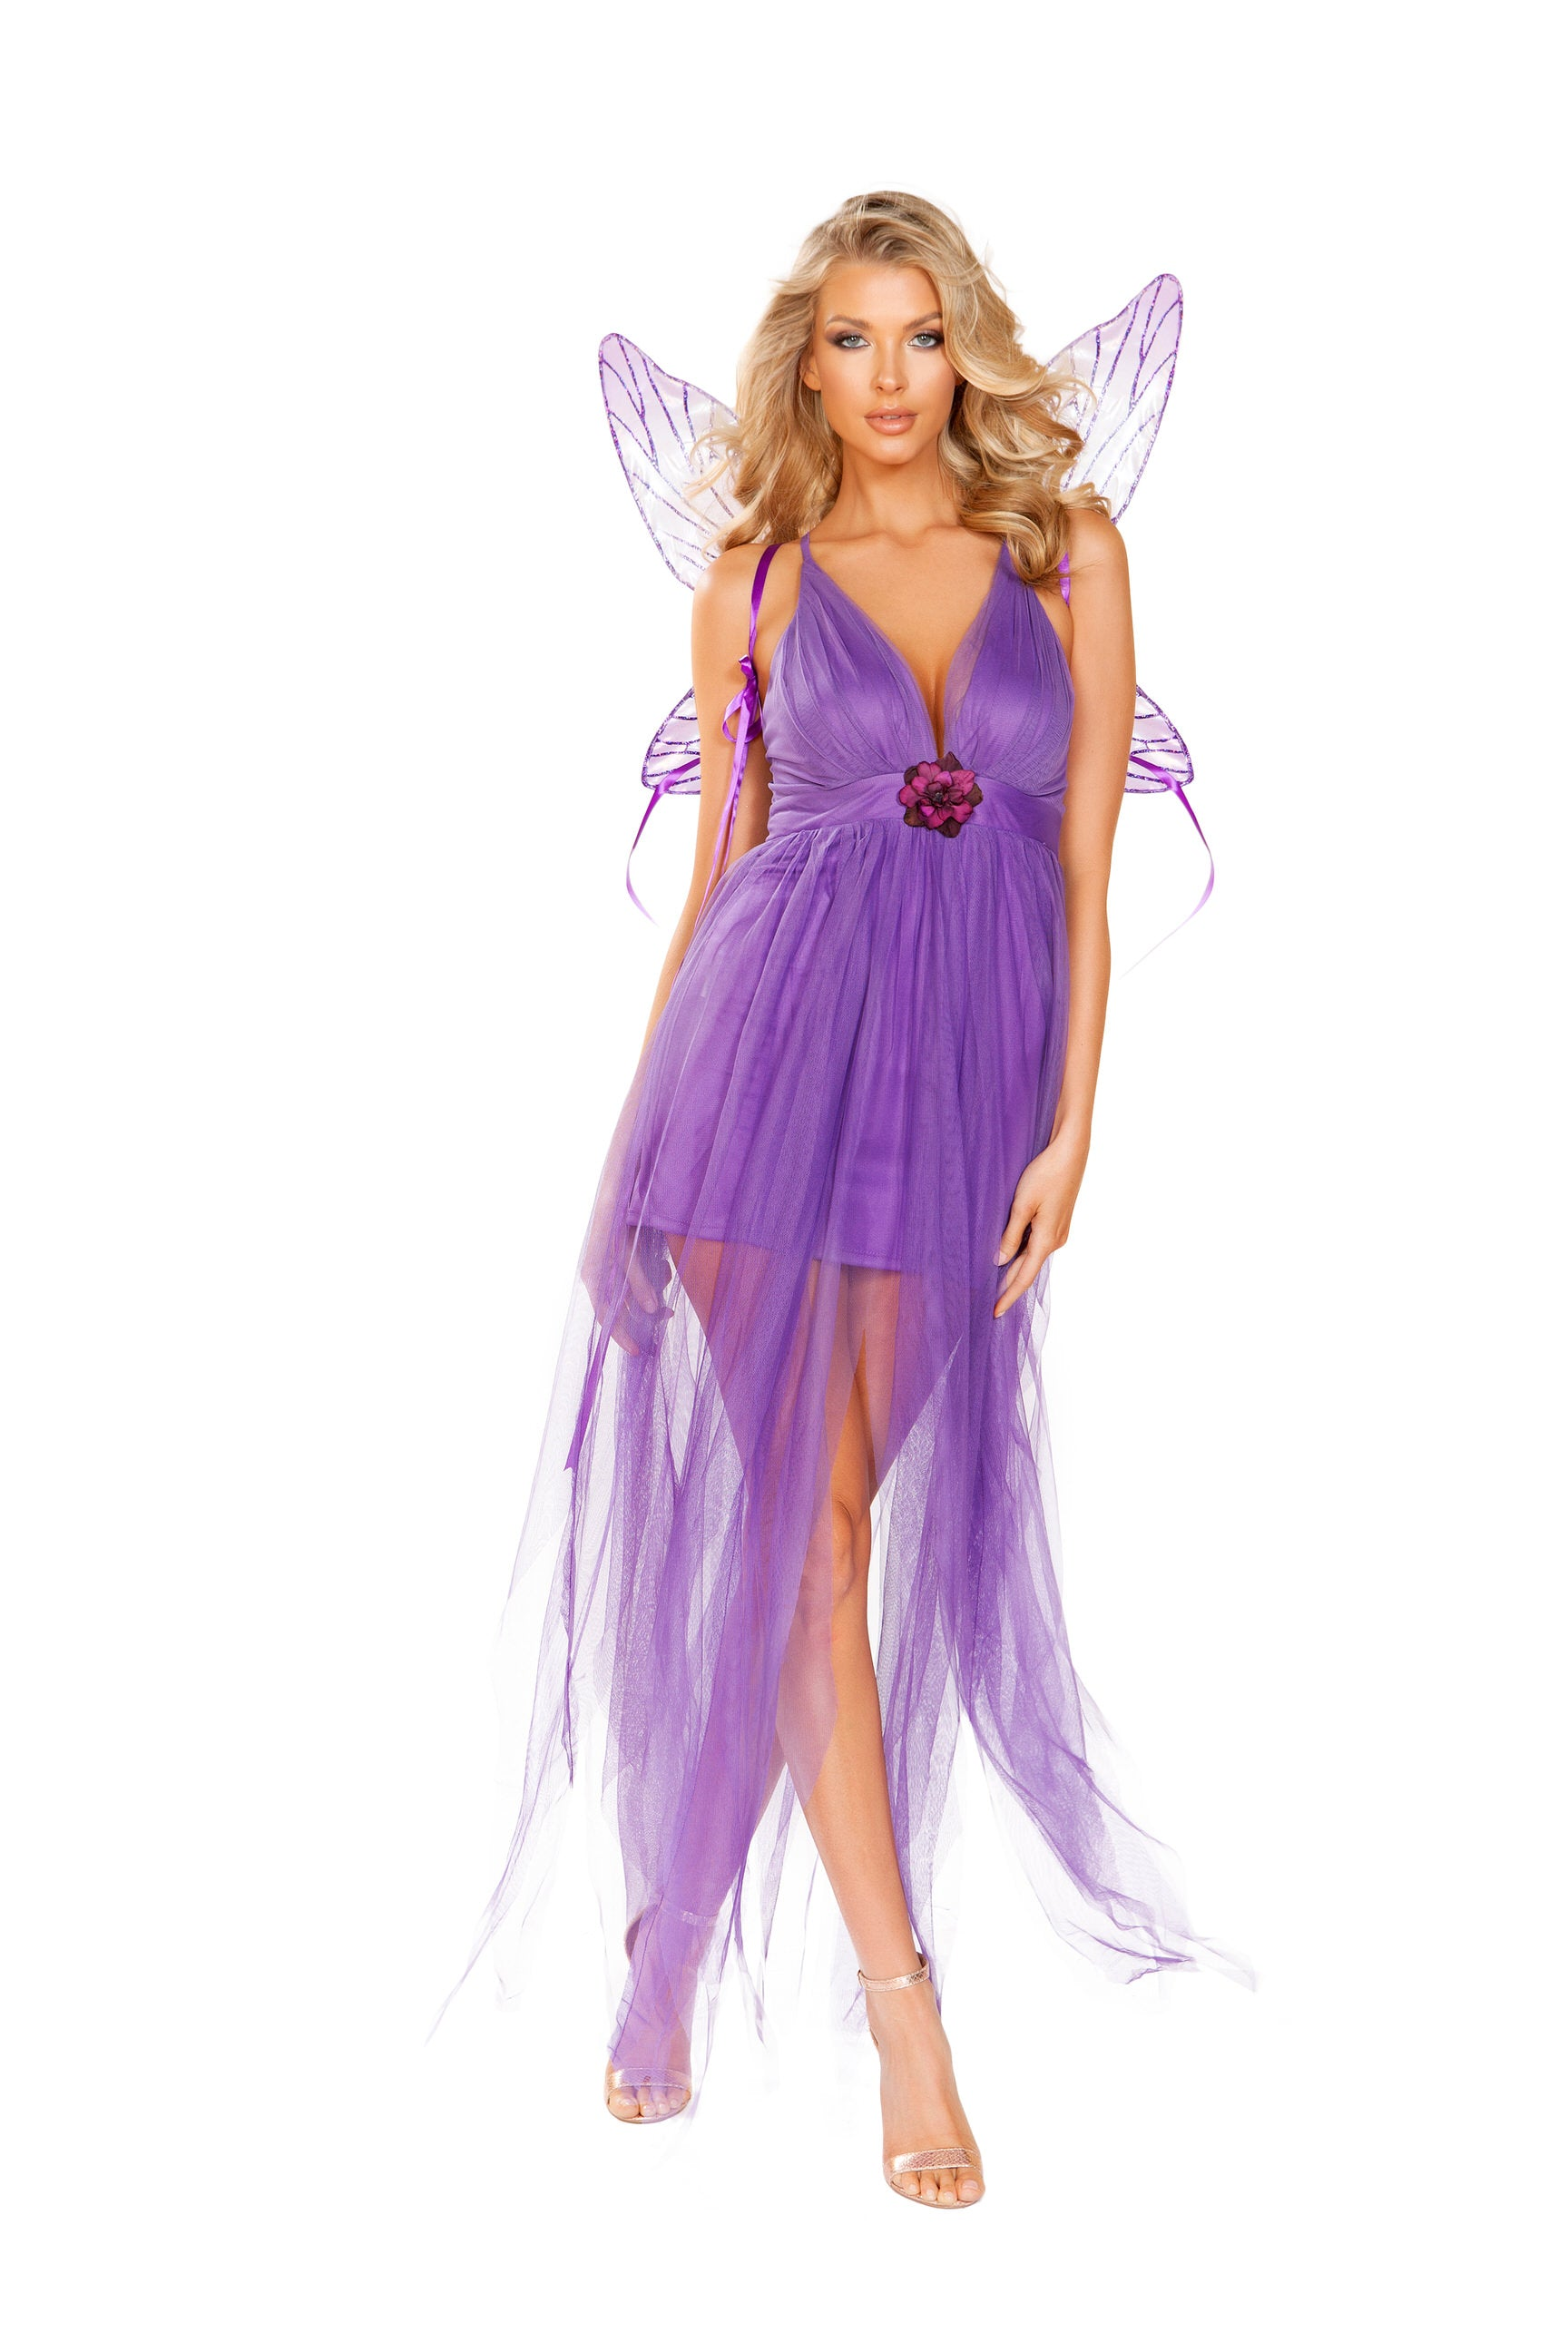 4938 - 2pc Lilac Fairy ${description} | Roma Costume and Roma Confidential wholesale manufacturer of Women Apparel bulk world wide wholesale and world wide drop ship services for Adult Halloween Costumes, Sexy and Elegant Lingerie, Rave Clothing, Club wear, and Christmas Costumes. Costumes, Roma Costume, Inc., Roma Costume, Roma Confidential, Wholesale clothing, drop ship, drop ship service, Wholesale Lingerie, Wholesale Adult Halloween Costumes, Rave Clothing, EDM Clothing, Festival Wear, Christmas Costumes, Clubwear, Club wear.